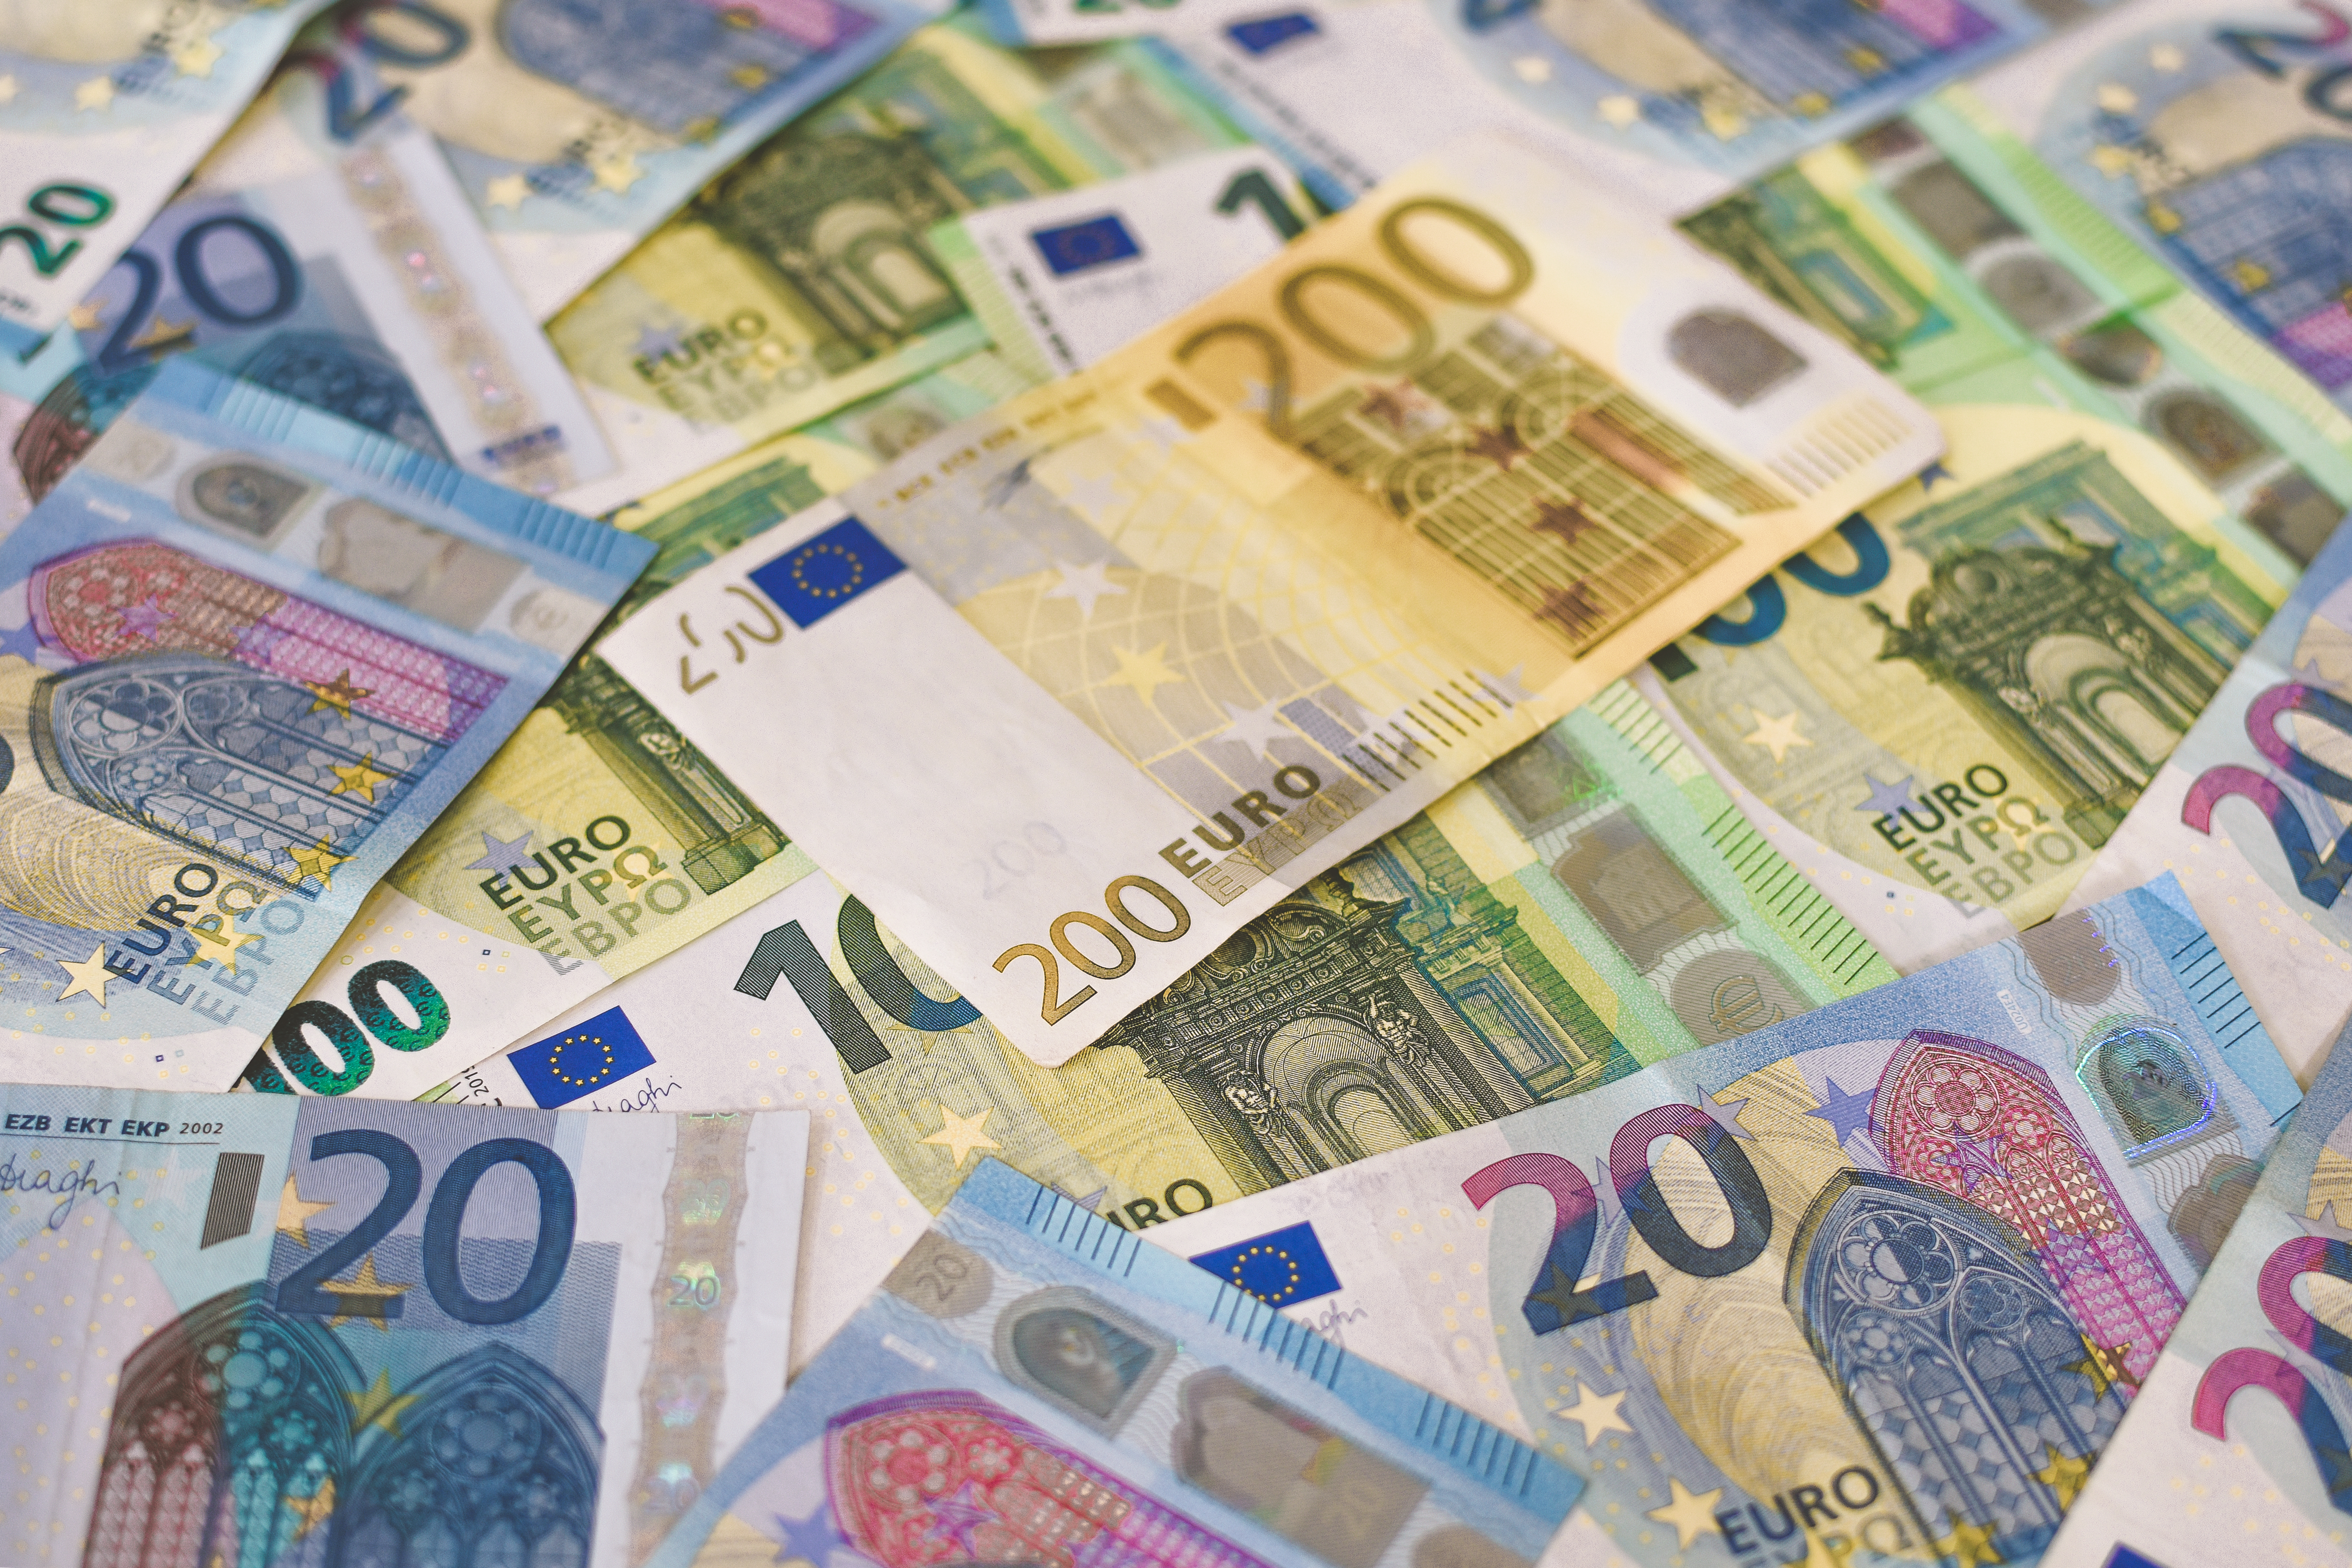 A pile of Euro (EUR) banknotes that include 20, 100, and 200 notes. (Part IV)